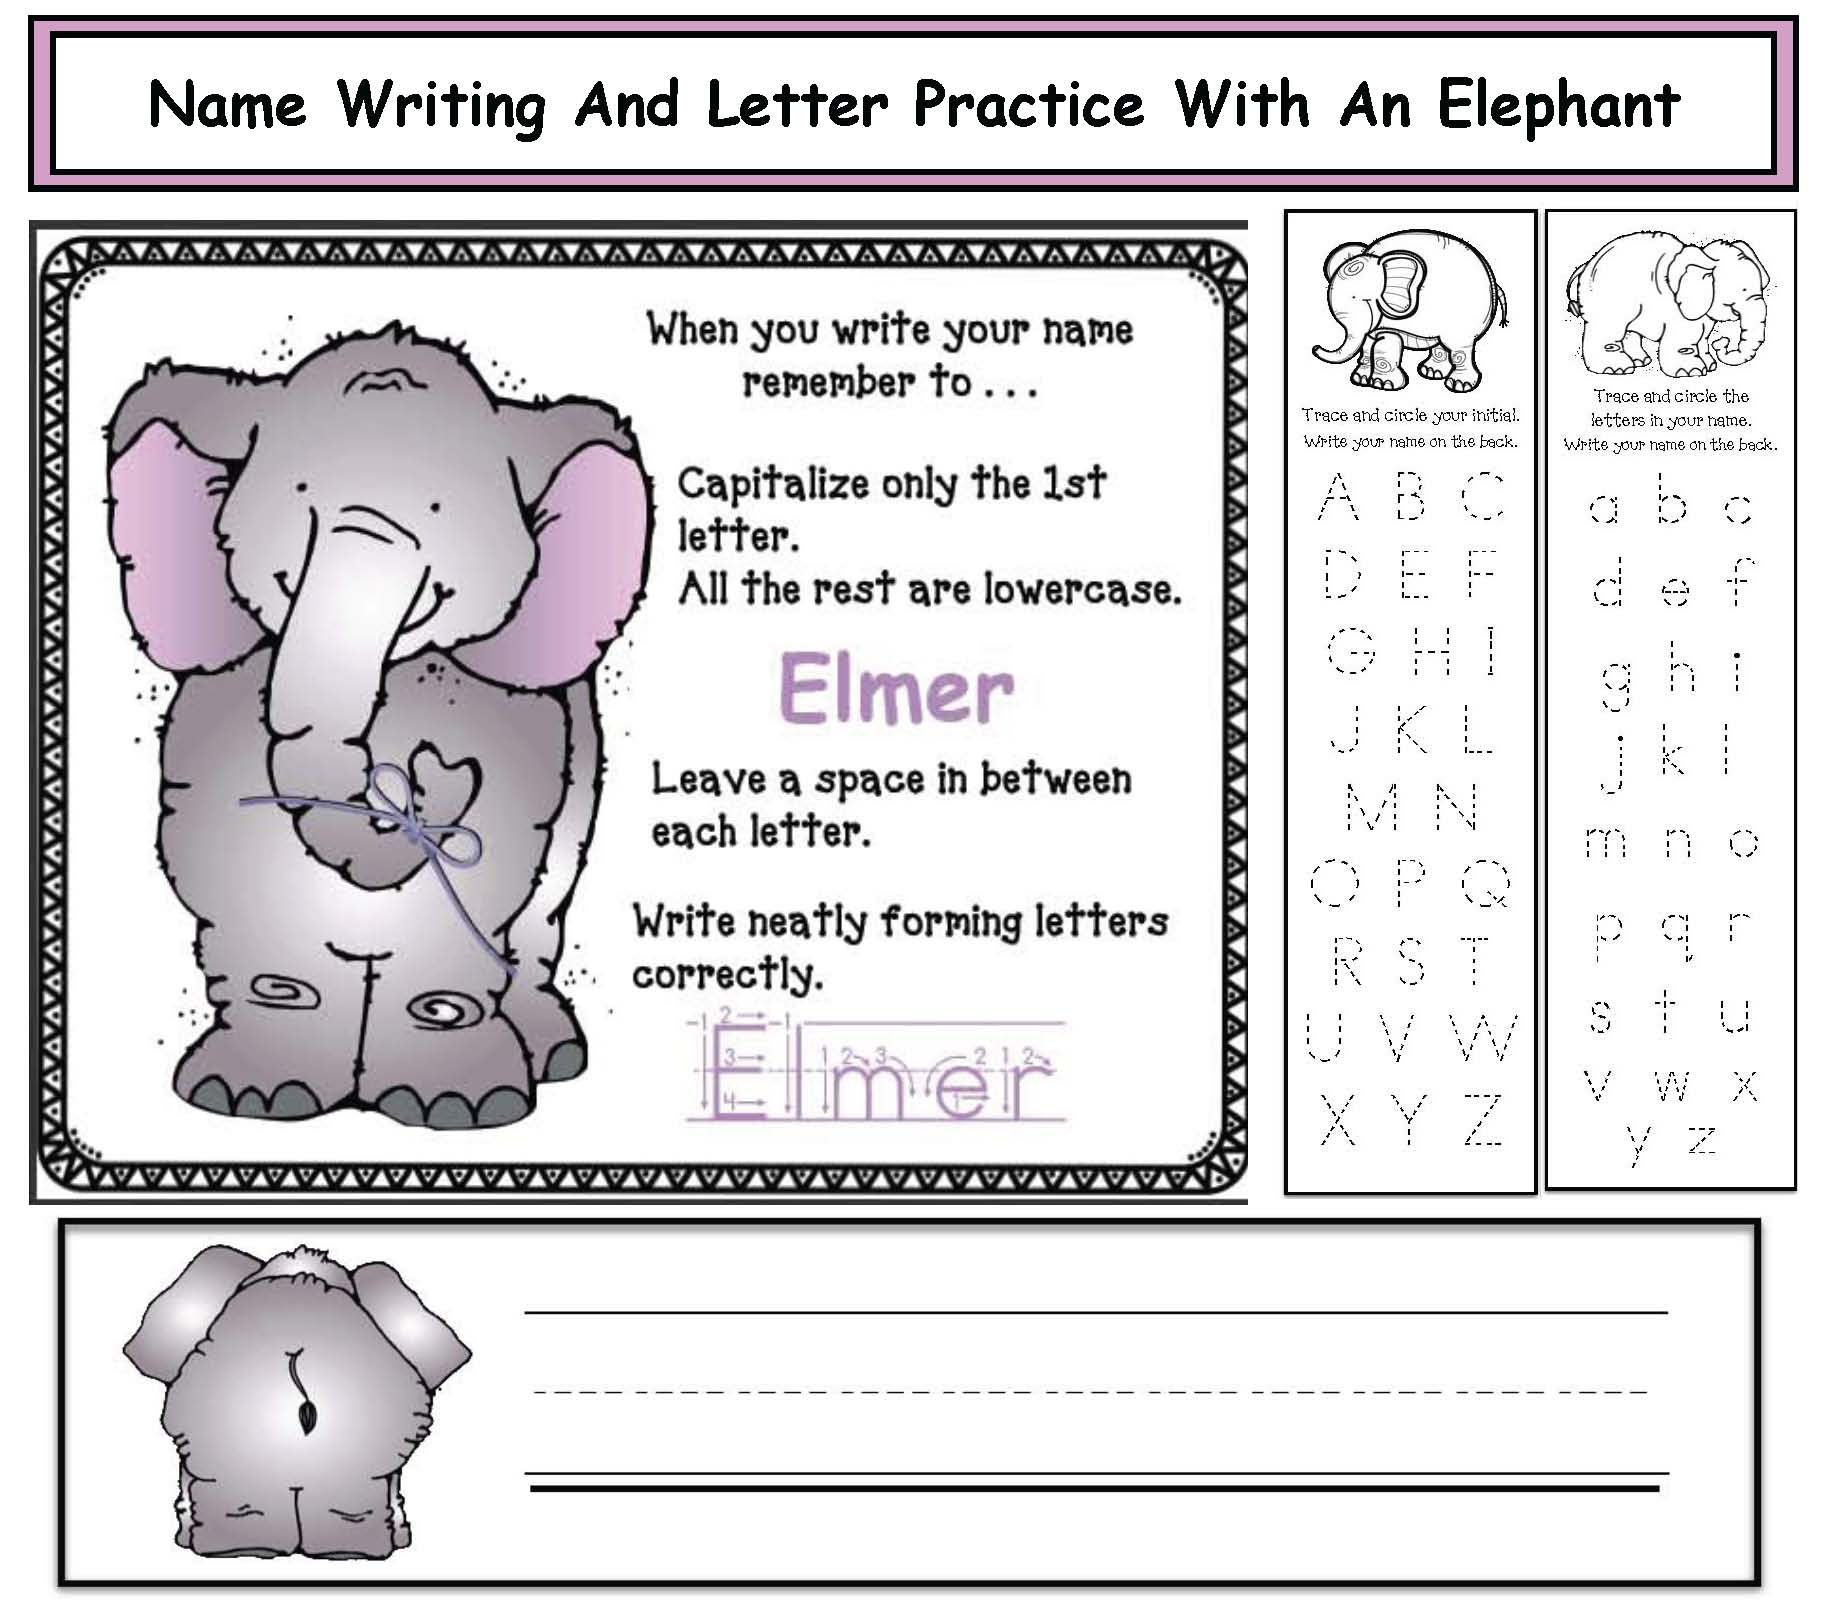 Elmer the elephant activities, name writing activities, name writing crafts, back to school name activities, back to school ideas, icebreakers, elephant crafts, Elmer crafts, Elmer activities